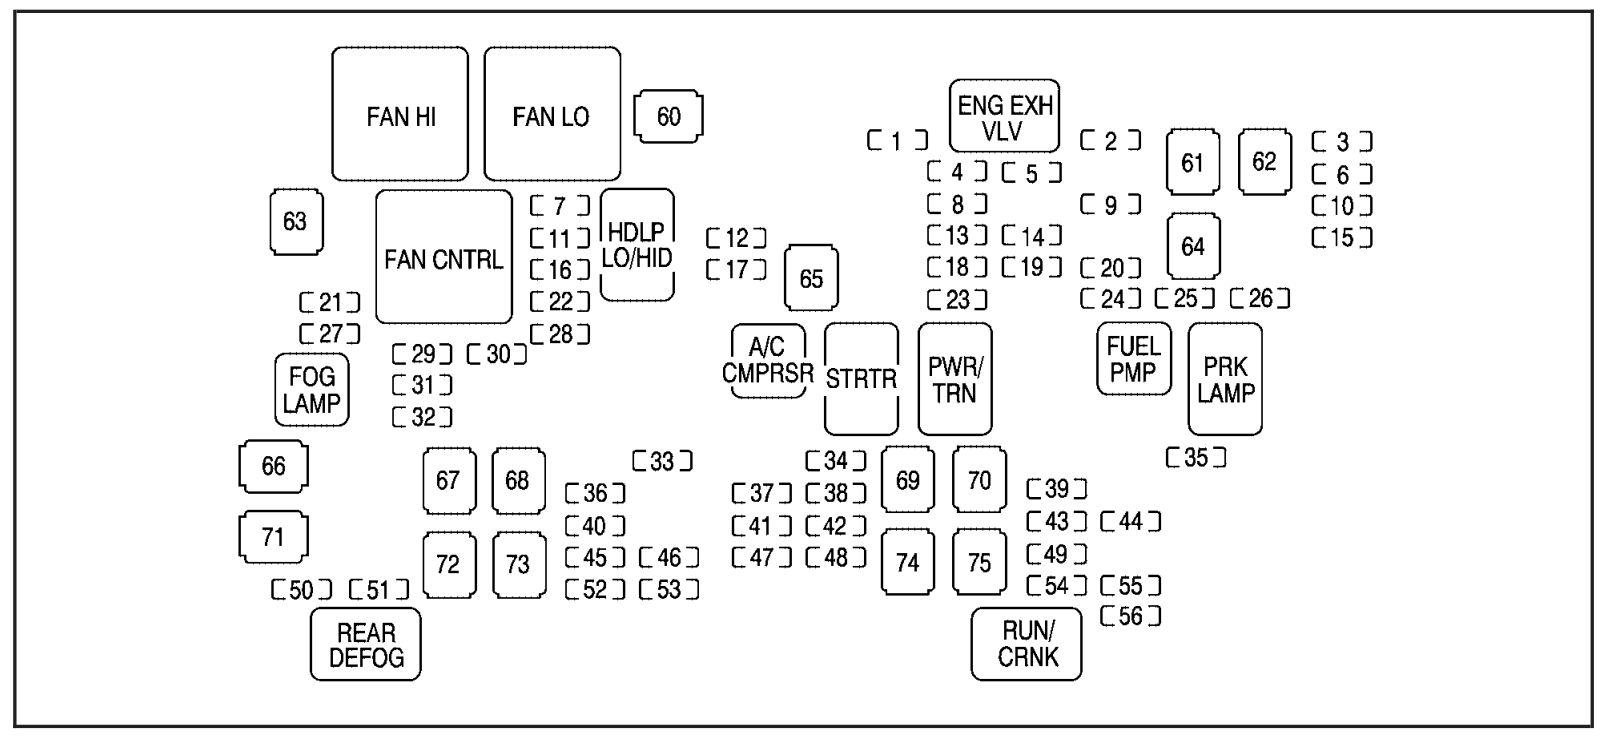 2007 Tahoe Fuse Box - Wiring Diagram Blog on 2007 chevy monte carlo wiring diagram, 2007 chevy trailblazer radio wiring diagram, 2013 chevy tahoe door diagram, 2007 chevy tahoe water pump, 1993 chevy tahoe wiring diagram, 2011 chevy suburban wiring diagram, 2007 chevy tahoe belt diagram, 2007 chevy tahoe sales brochure, 2007 chevy tahoe voltage regulator, 2007 chevy uplander wiring diagram, 2002 chevy trailblazer 4x4 wiring diagram, 2003 buick century wiring diagram, 2008 chevy tahoe wiring diagram, 2007 chevy tahoe front suspension diagram, 2007 chevy tahoe specifications, 2011 chevy avalanche wiring diagram, 2002 chevy tahoe wiring diagram, 2005 chevy tahoe wiring diagram, 2007 chevy tahoe oil sending unit, 2007 chevy tahoe fuse box diagram,